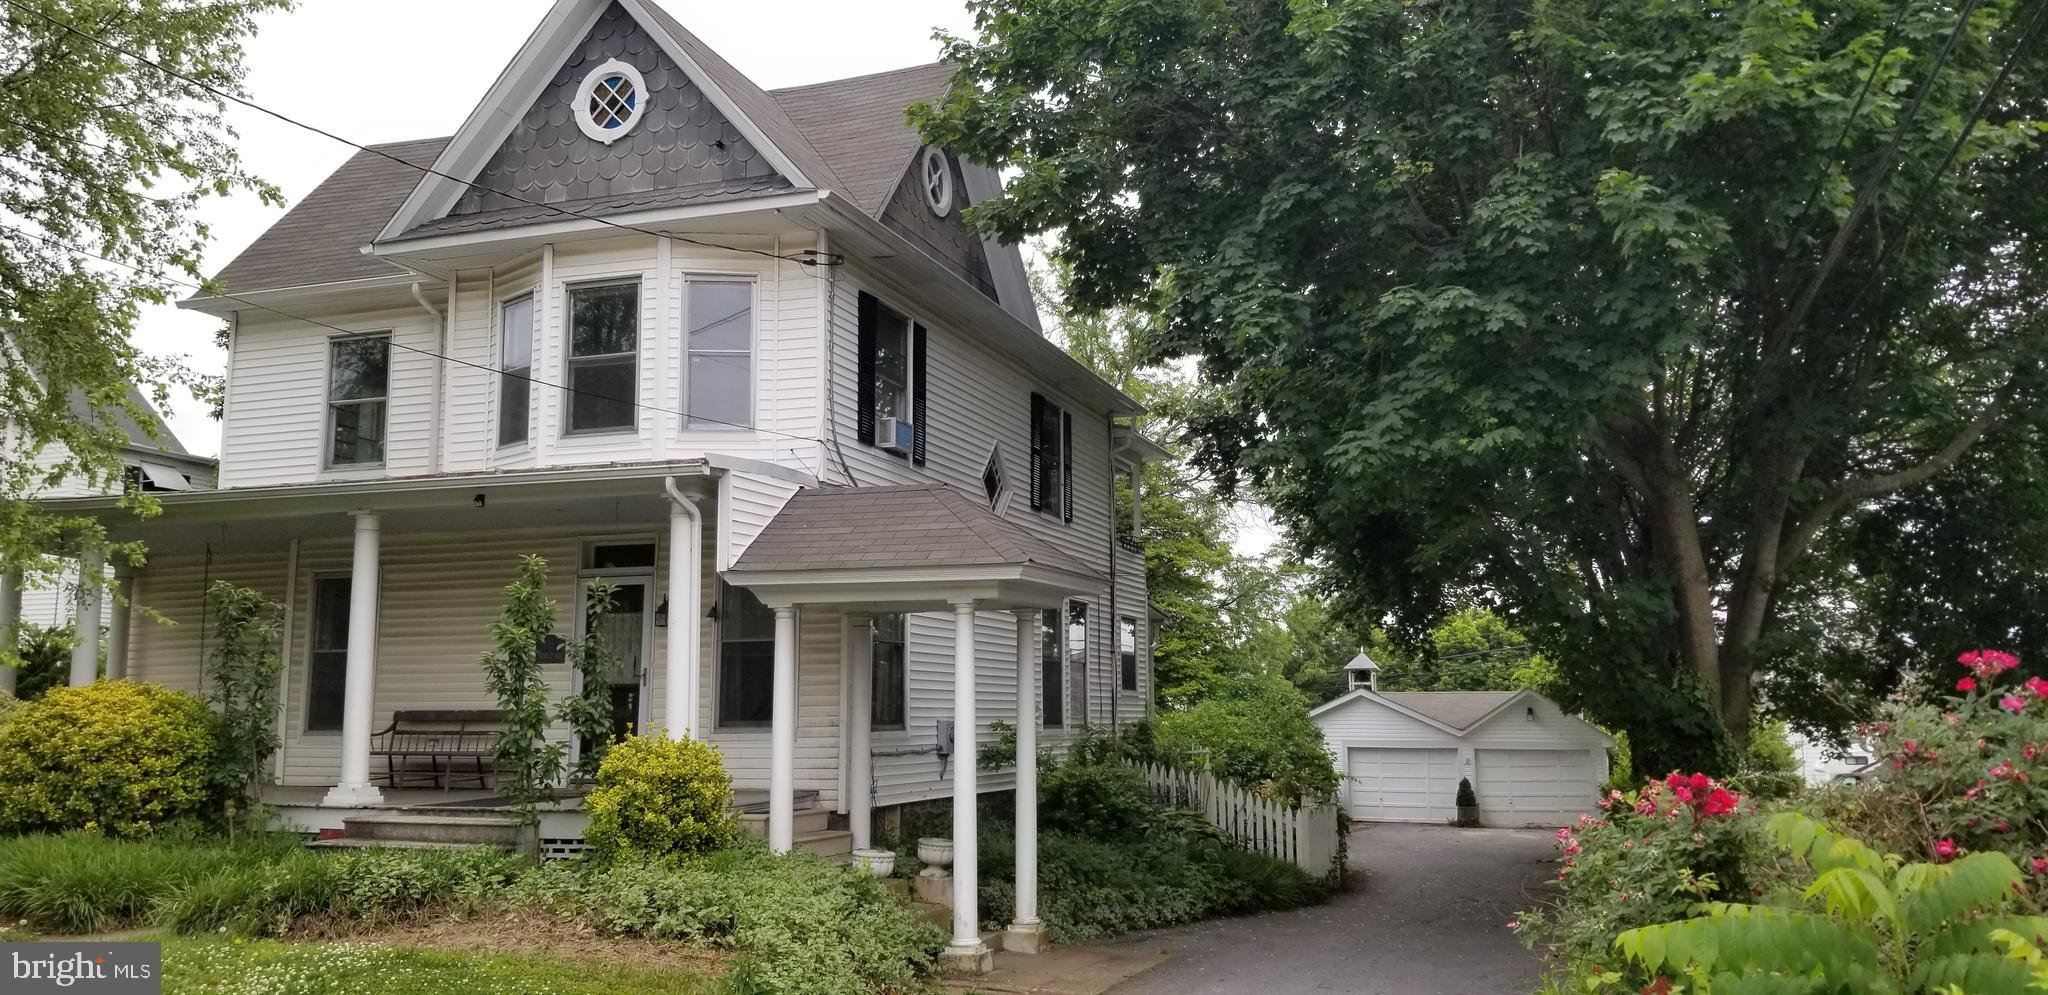 ## INCREDIBLE HOME PRICED TO STEAL!! BANK APPROVED PRICE!   MOTIVATED SELLER! AMAZING OPPORTUNITY TO